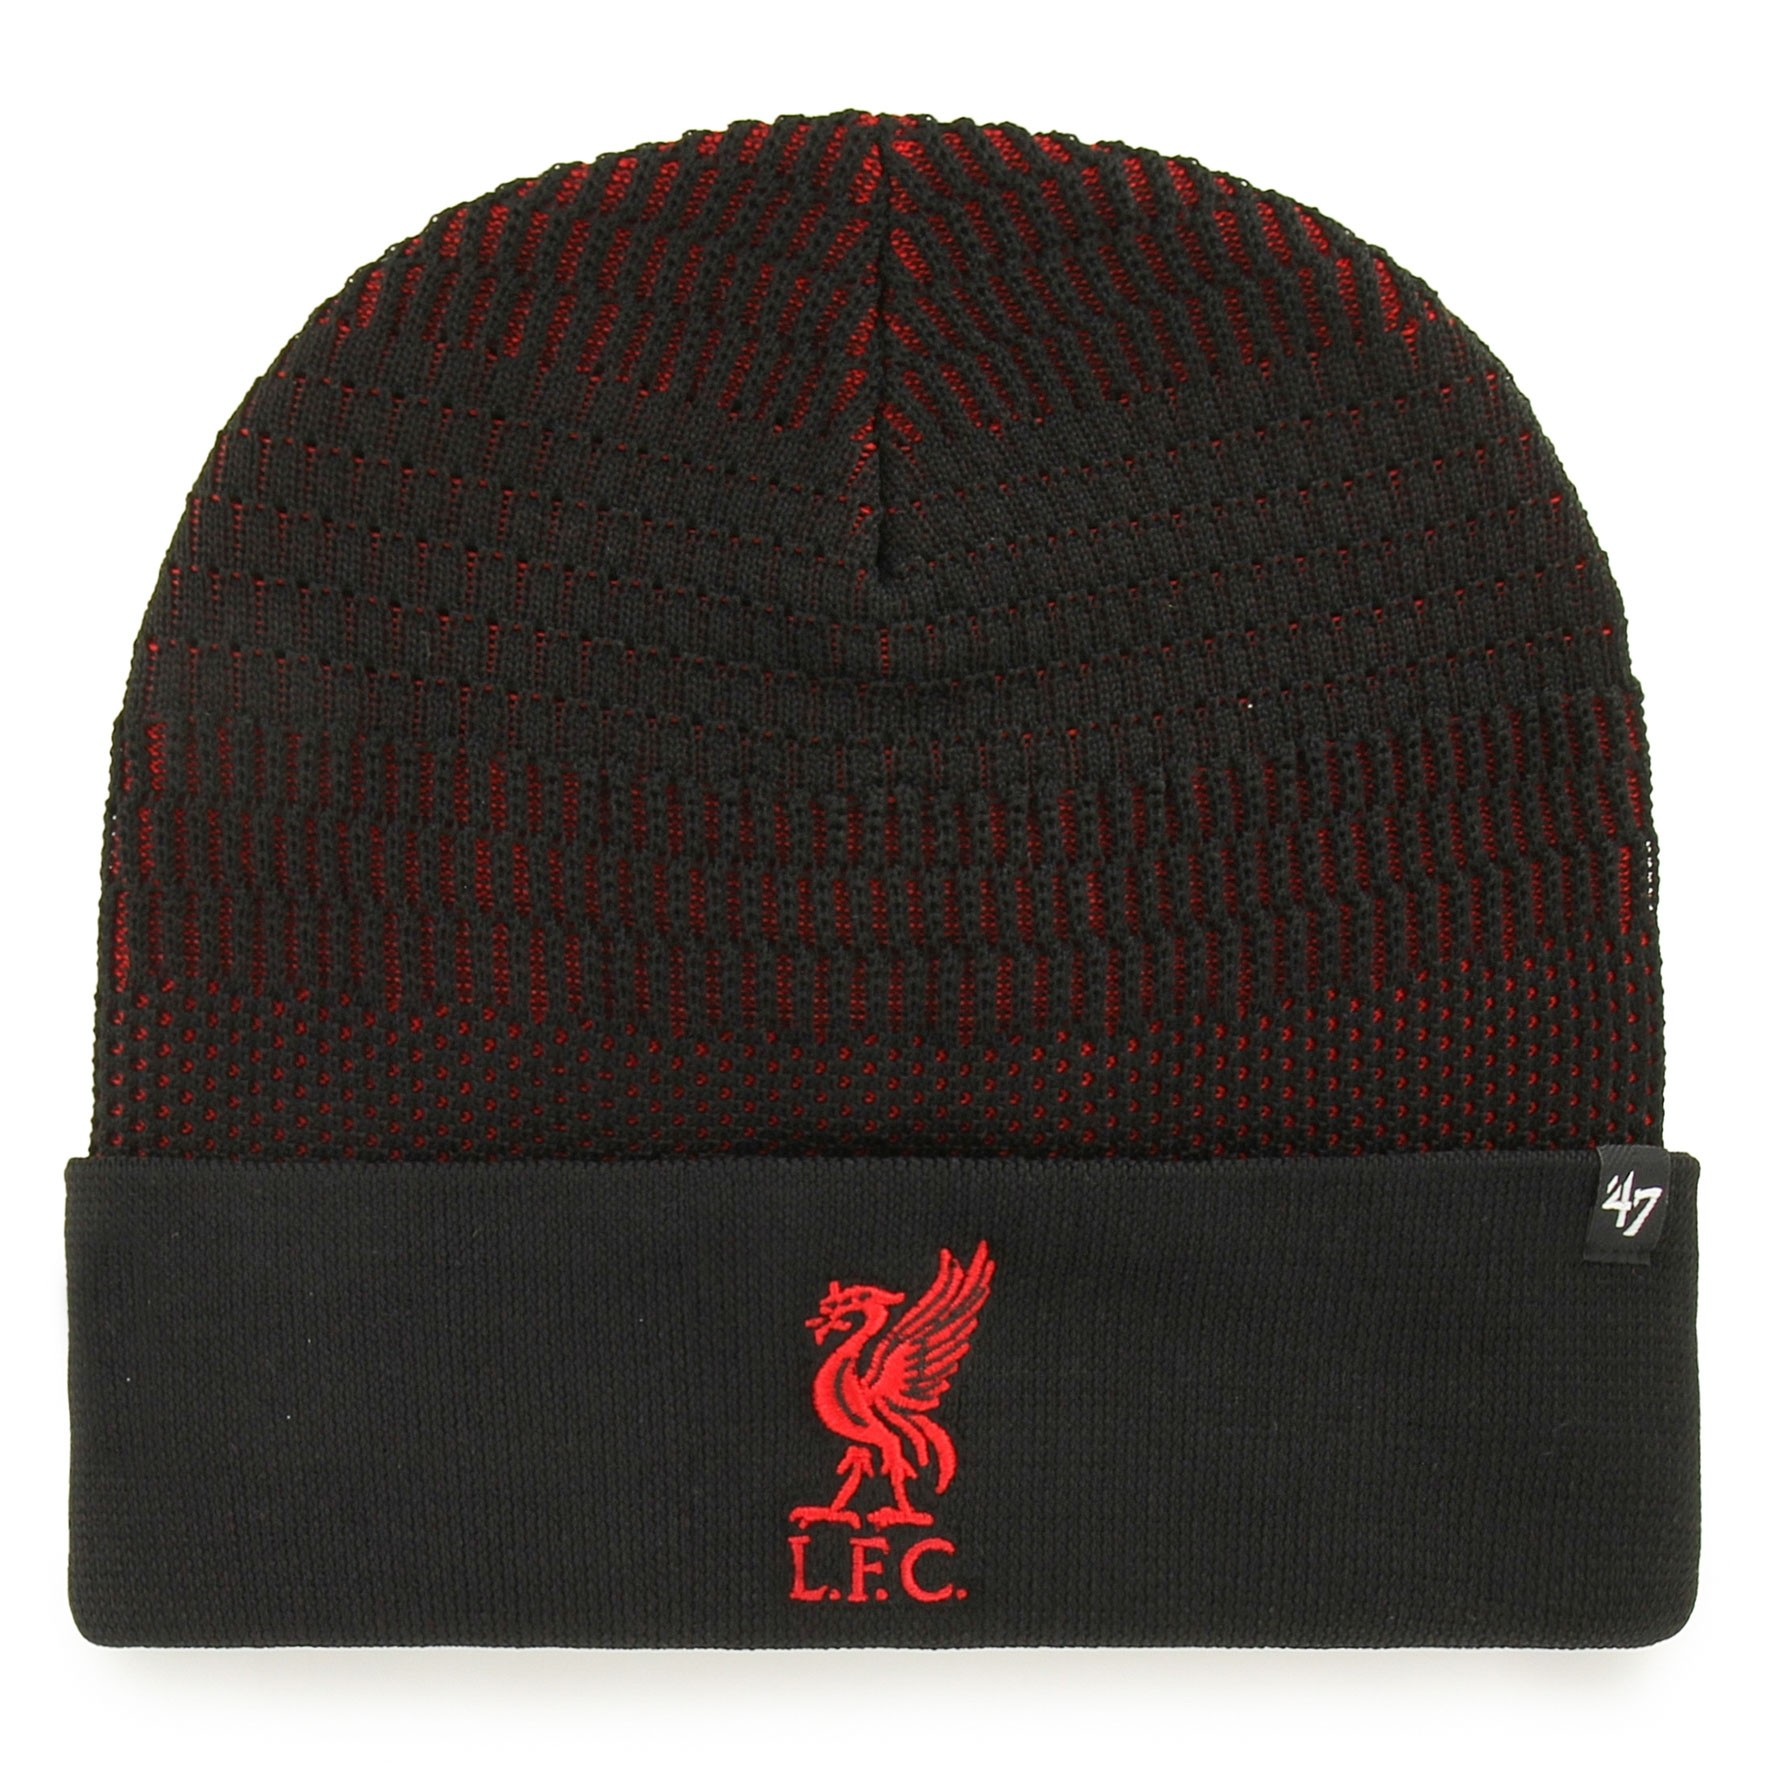 LFC Adults '47 Warp Cuff Knit Beanie